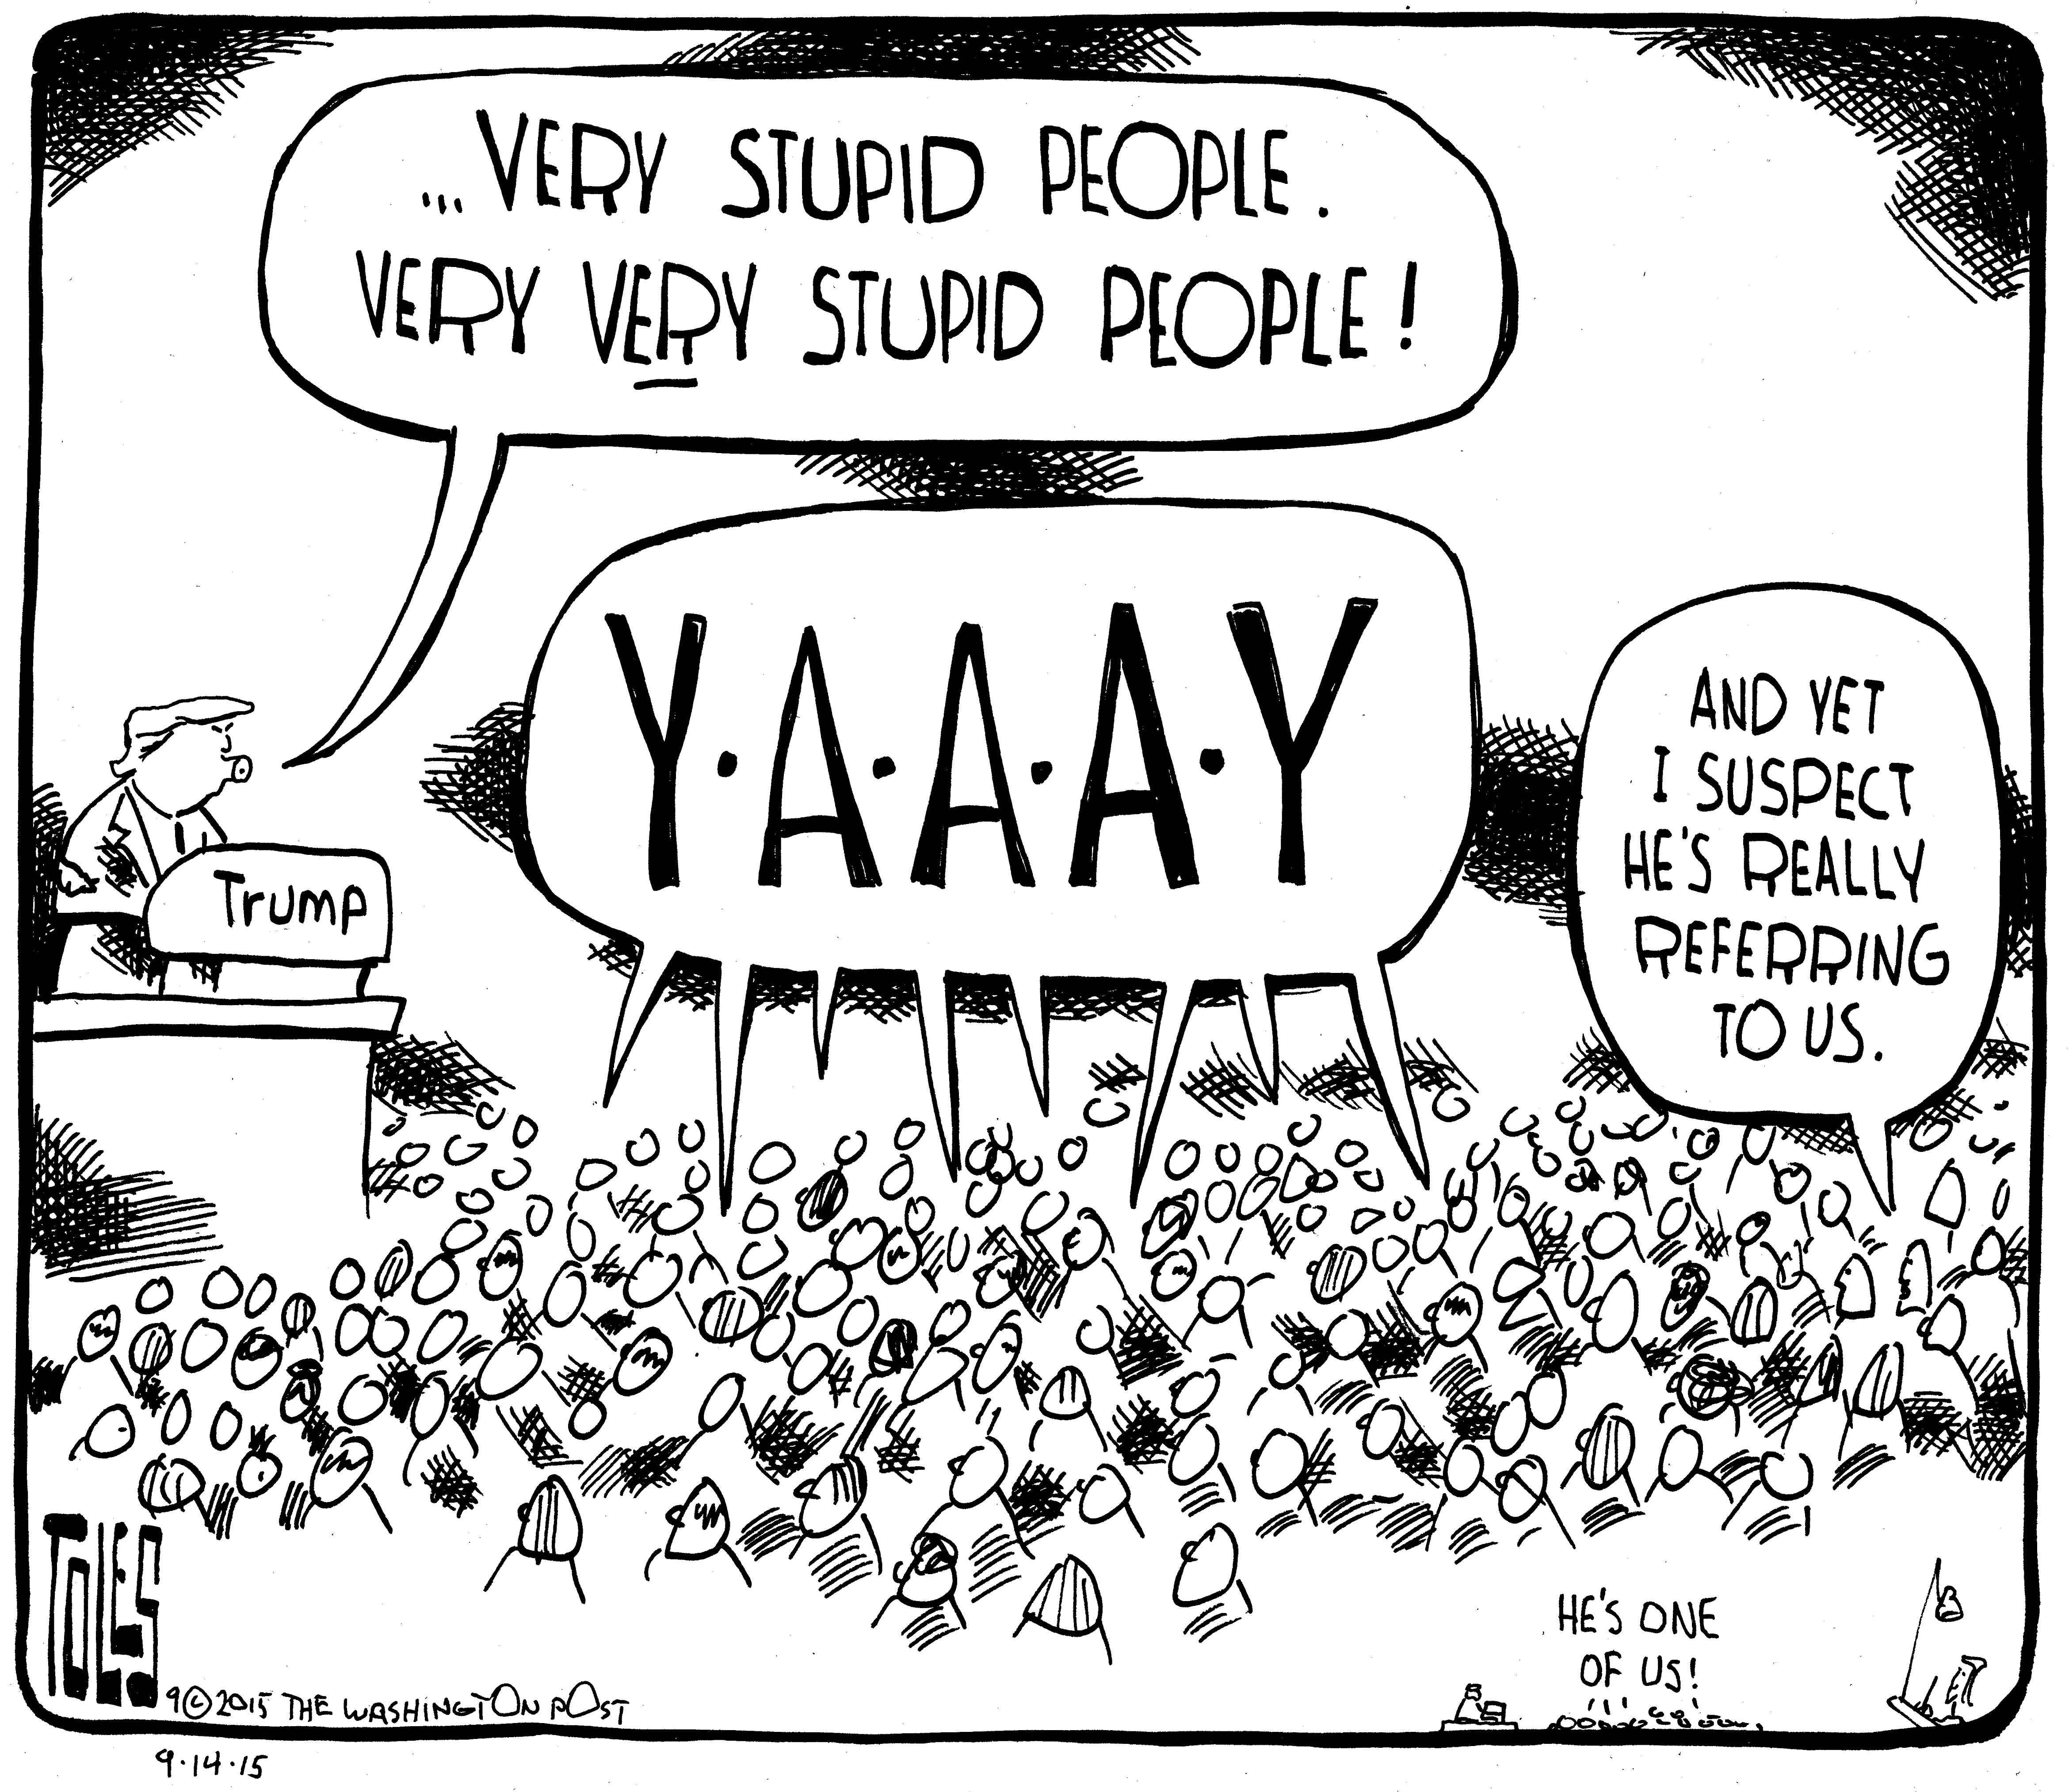 Monday S Cartoon Trump And The Very Very Stupid People The